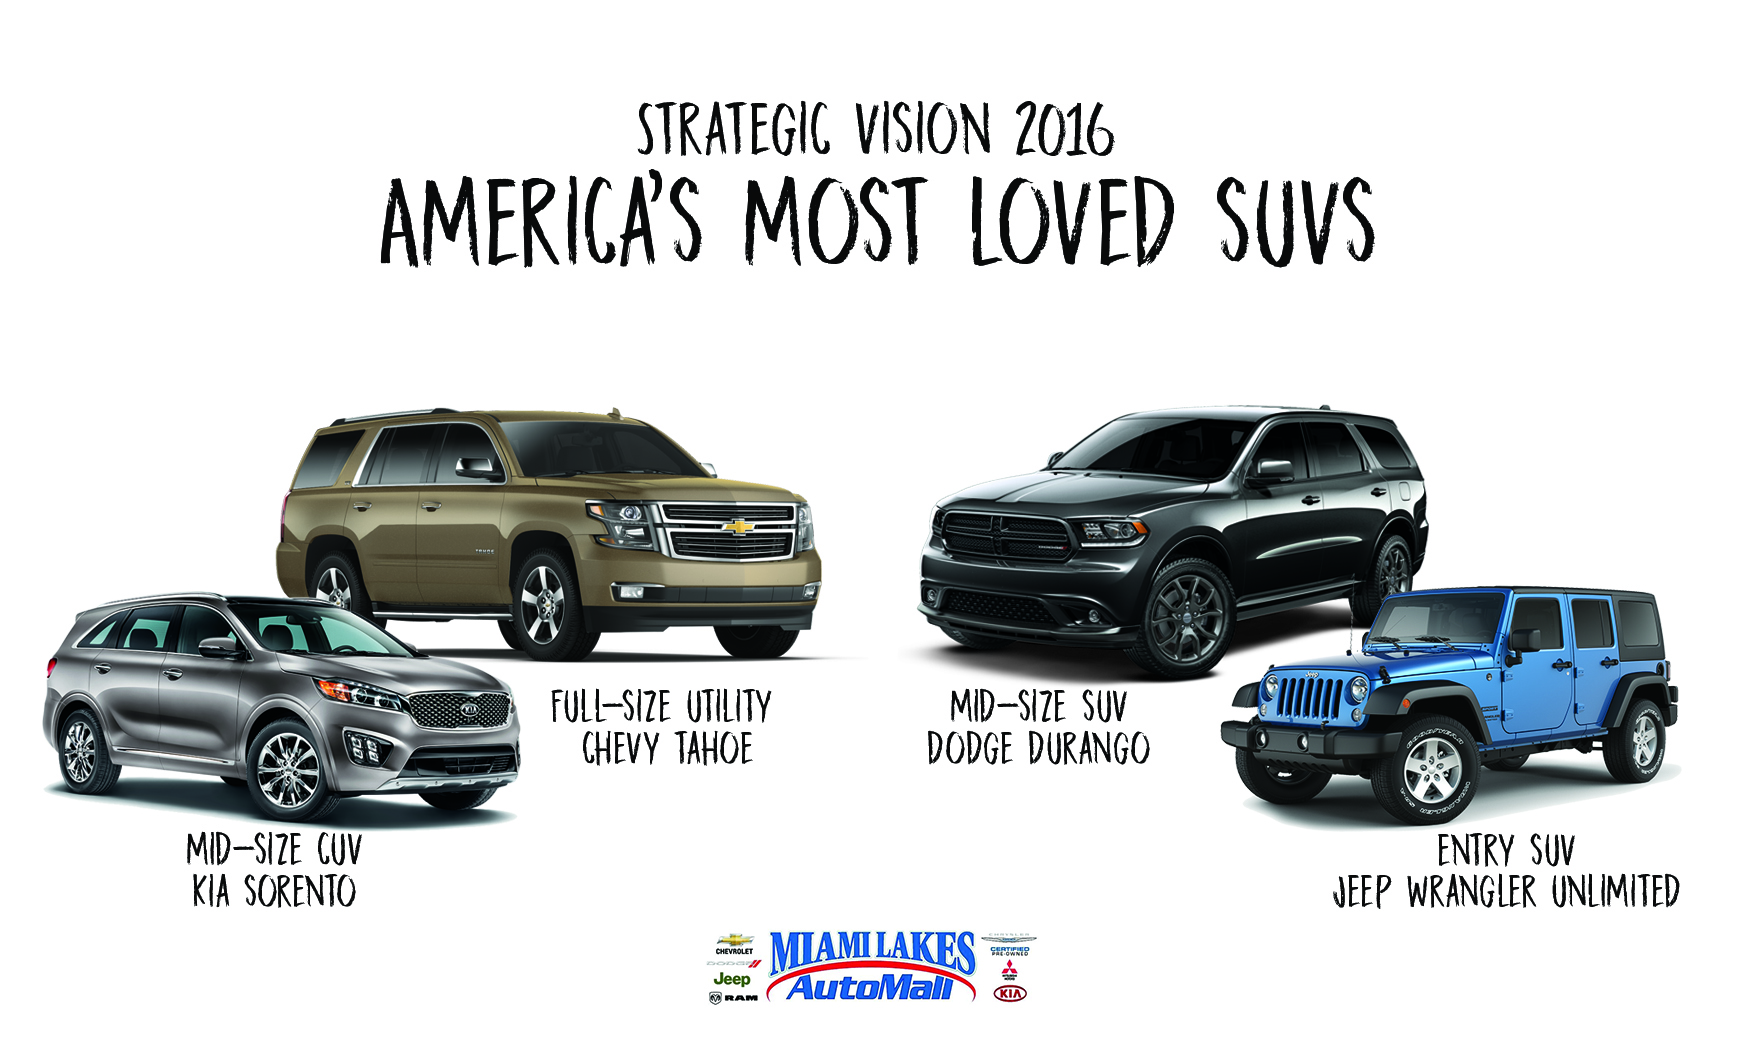 America's Most Loved 2016 SUVs at Miami Lakes Automall